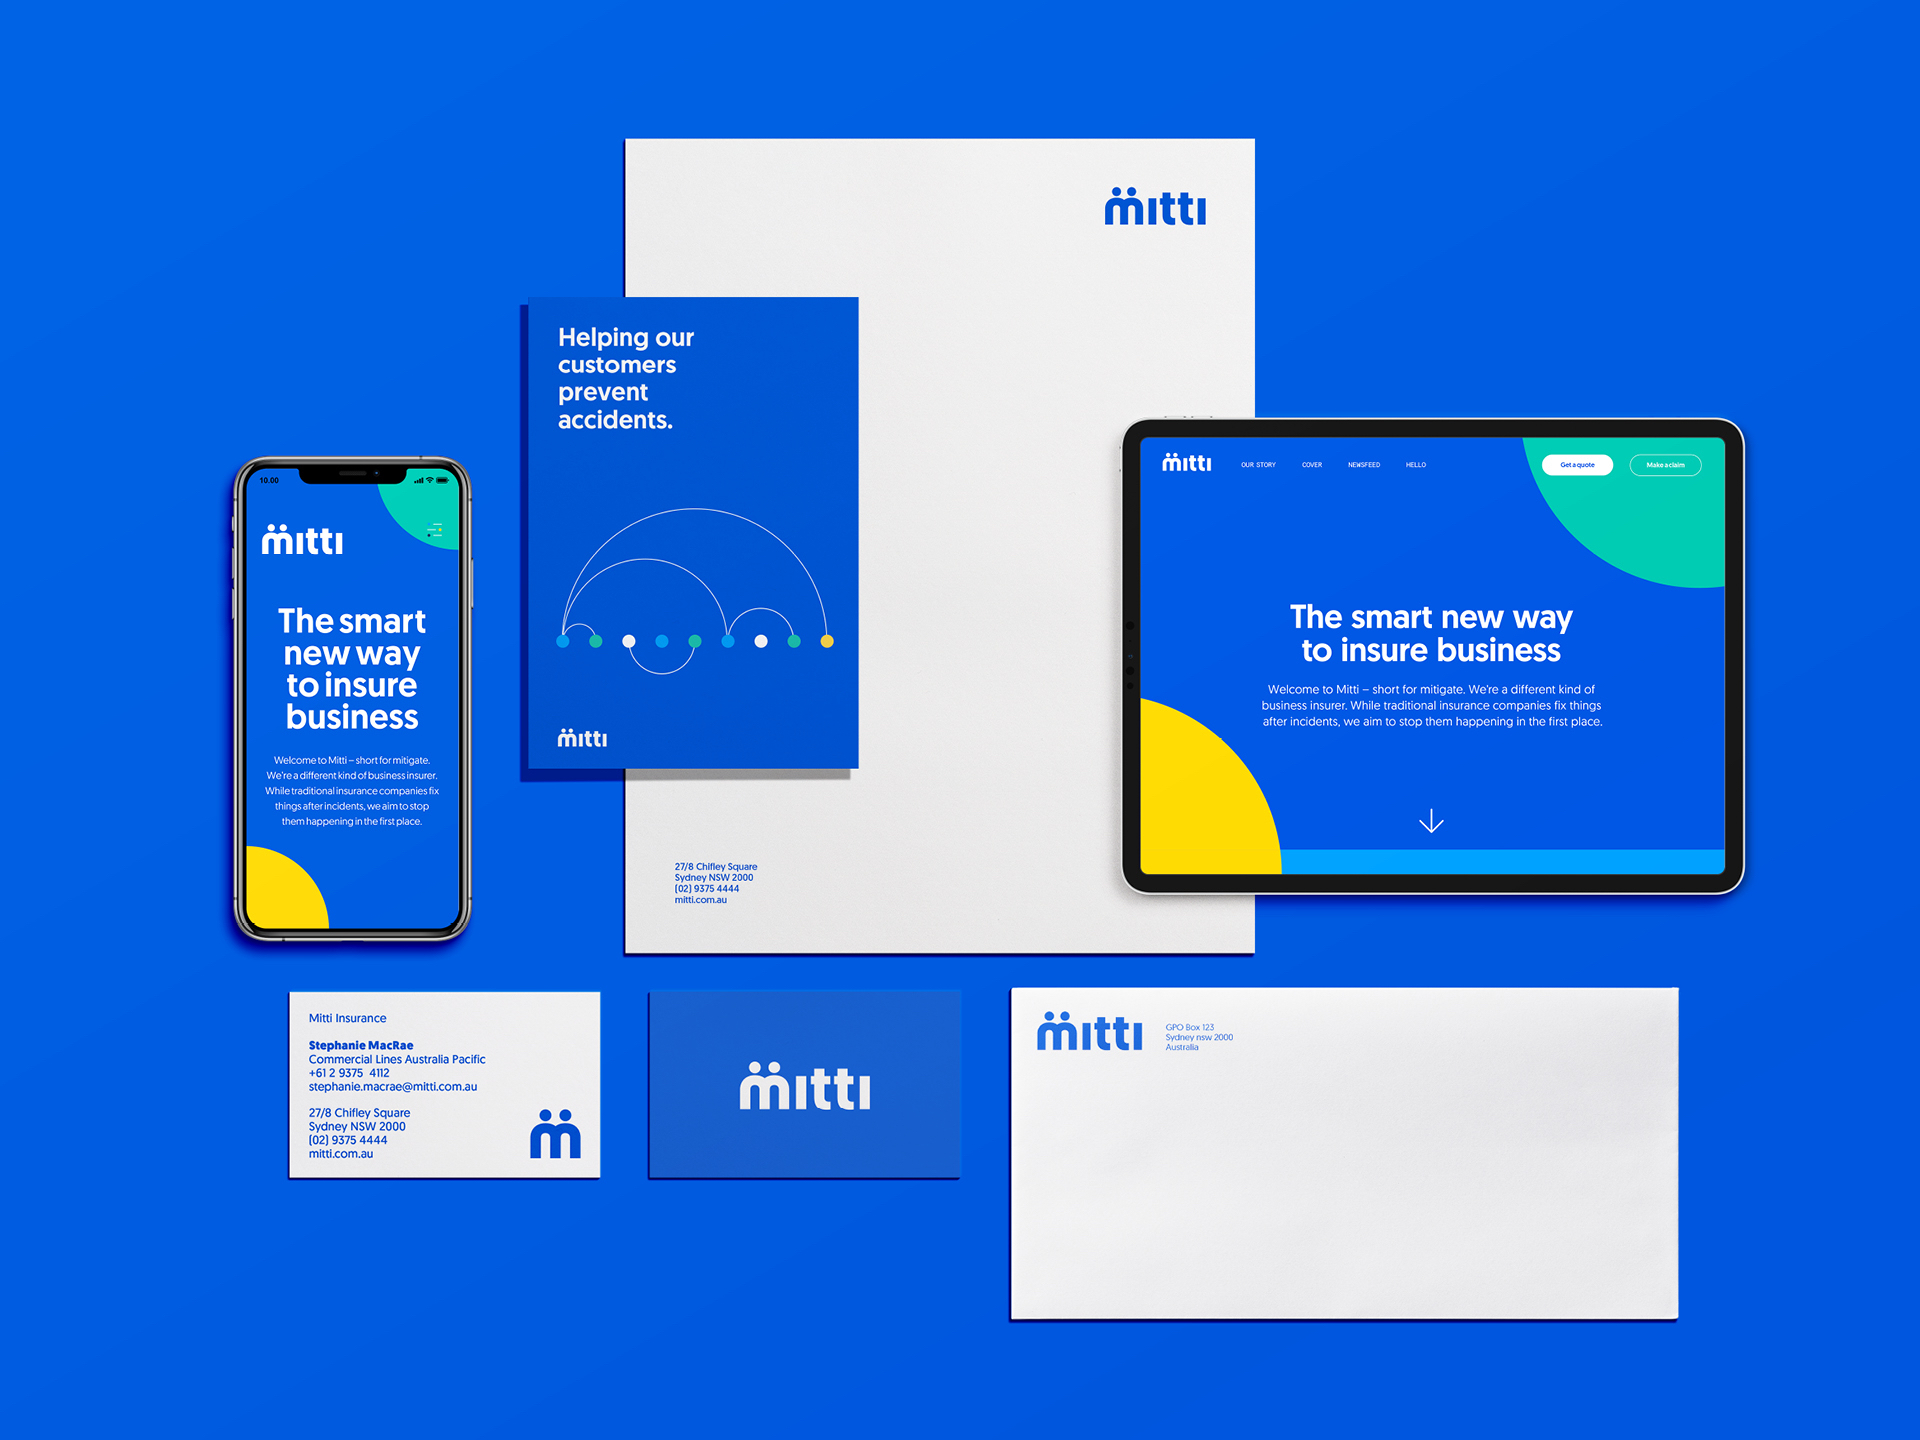 Insuretech Mitti launches new brand identity and website via The Core Agency